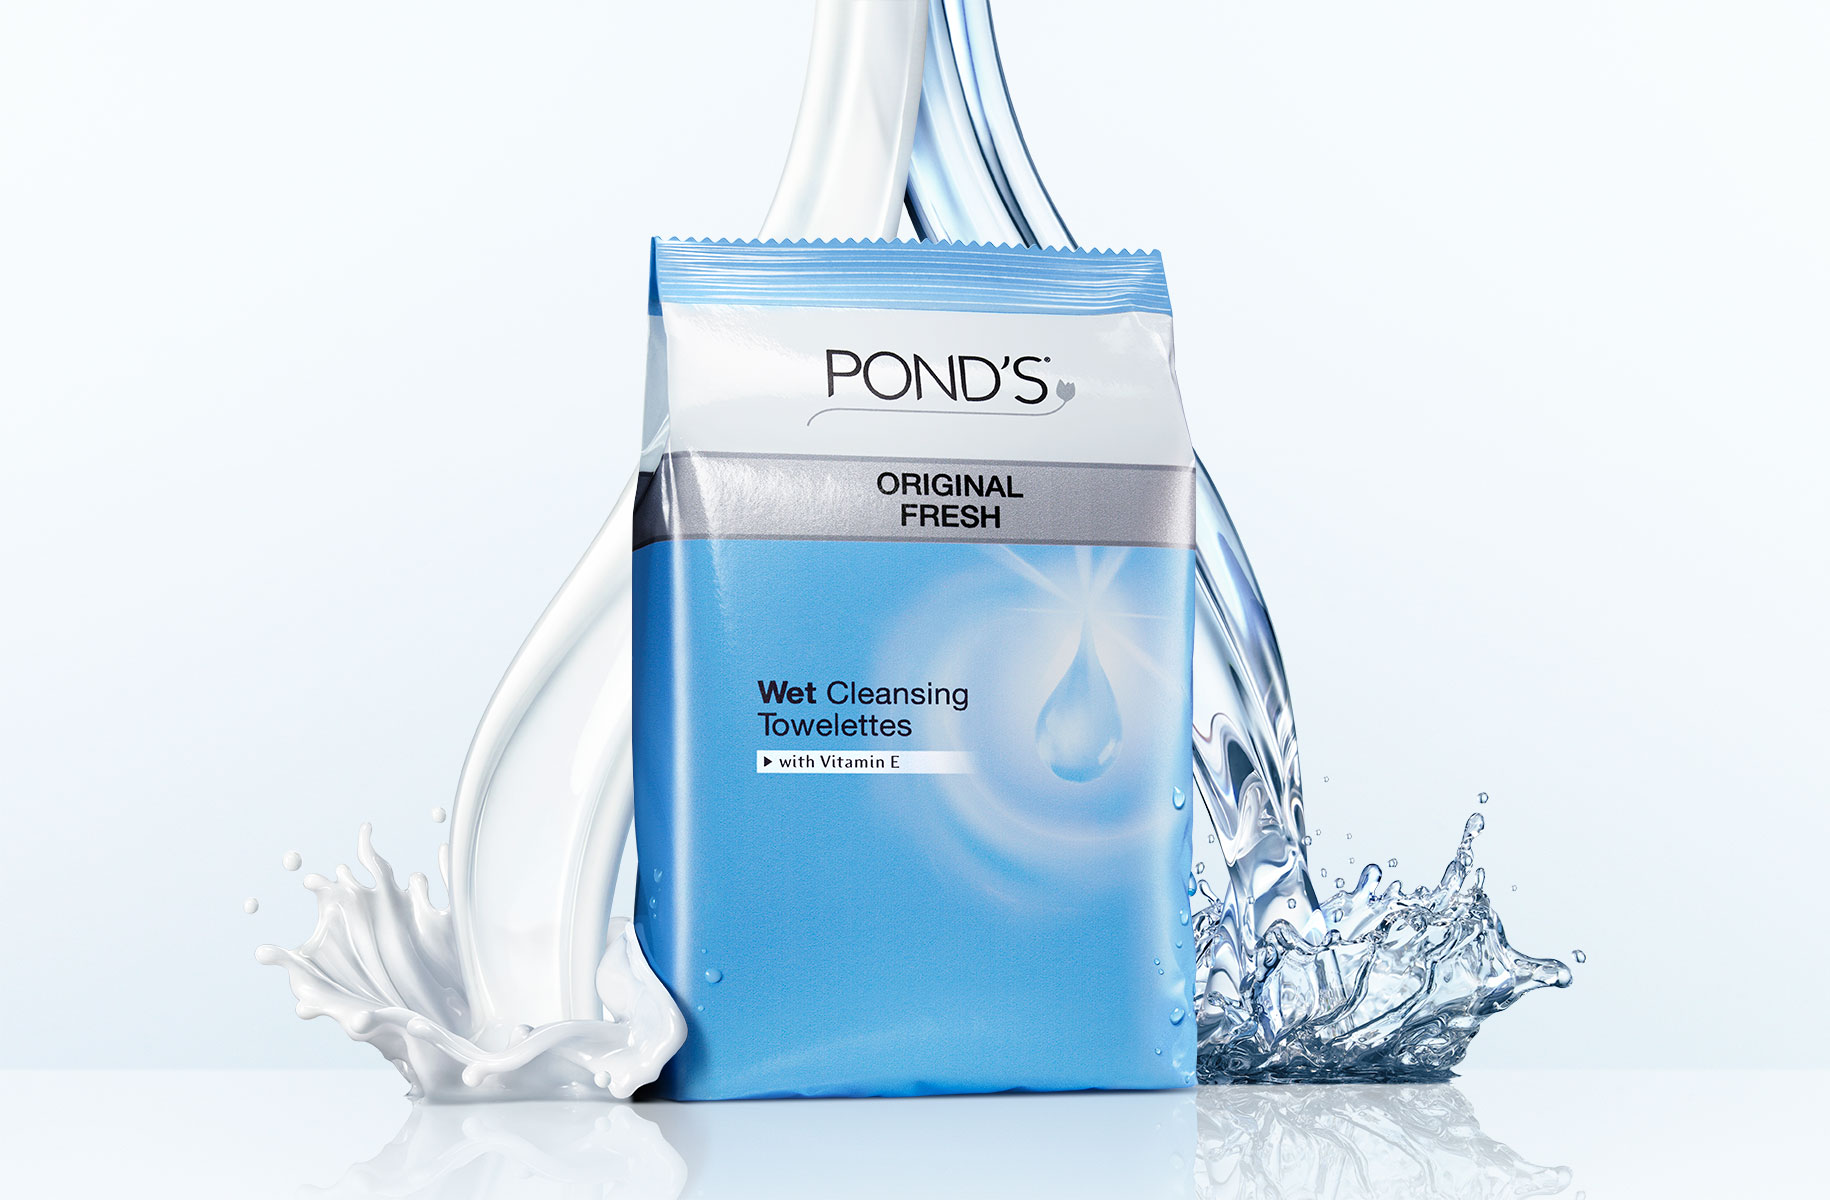 POND'S_0221_off_RGB_fin.jpg